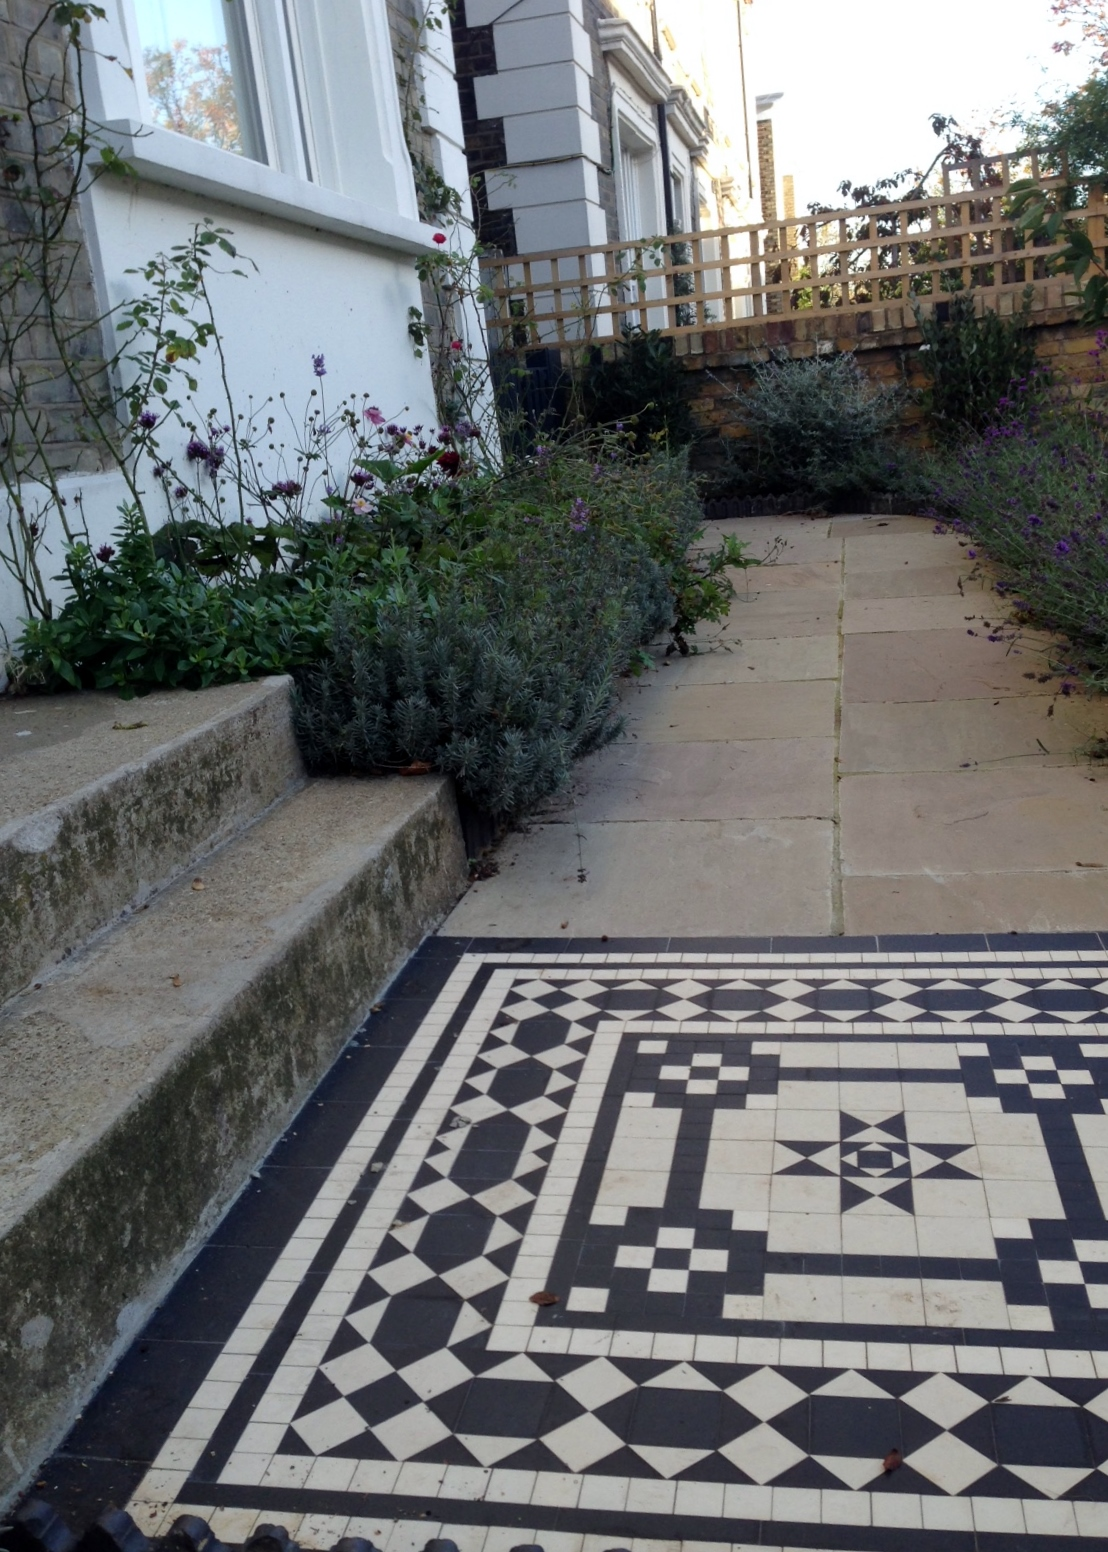 Islington Victorian mosaic tile path York stone sandstone paving wrought iron rails and gate London (21)